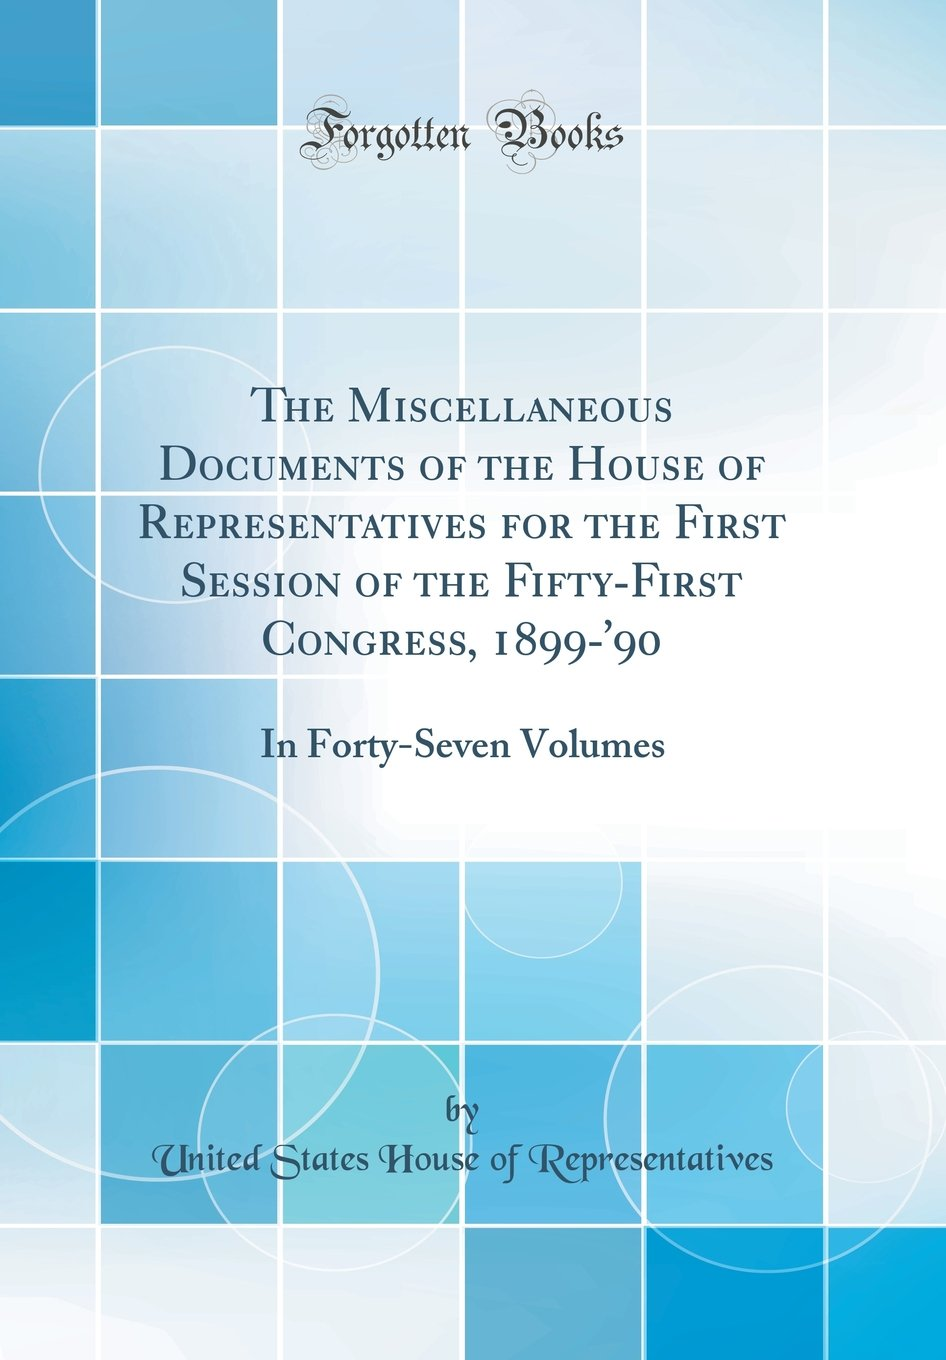 The Miscellaneous Documents of the House of Representatives for the First Session of the Fifty-First Congress, 1899-'90: In Forty-Seven Volumes (Classic Reprint) ebook